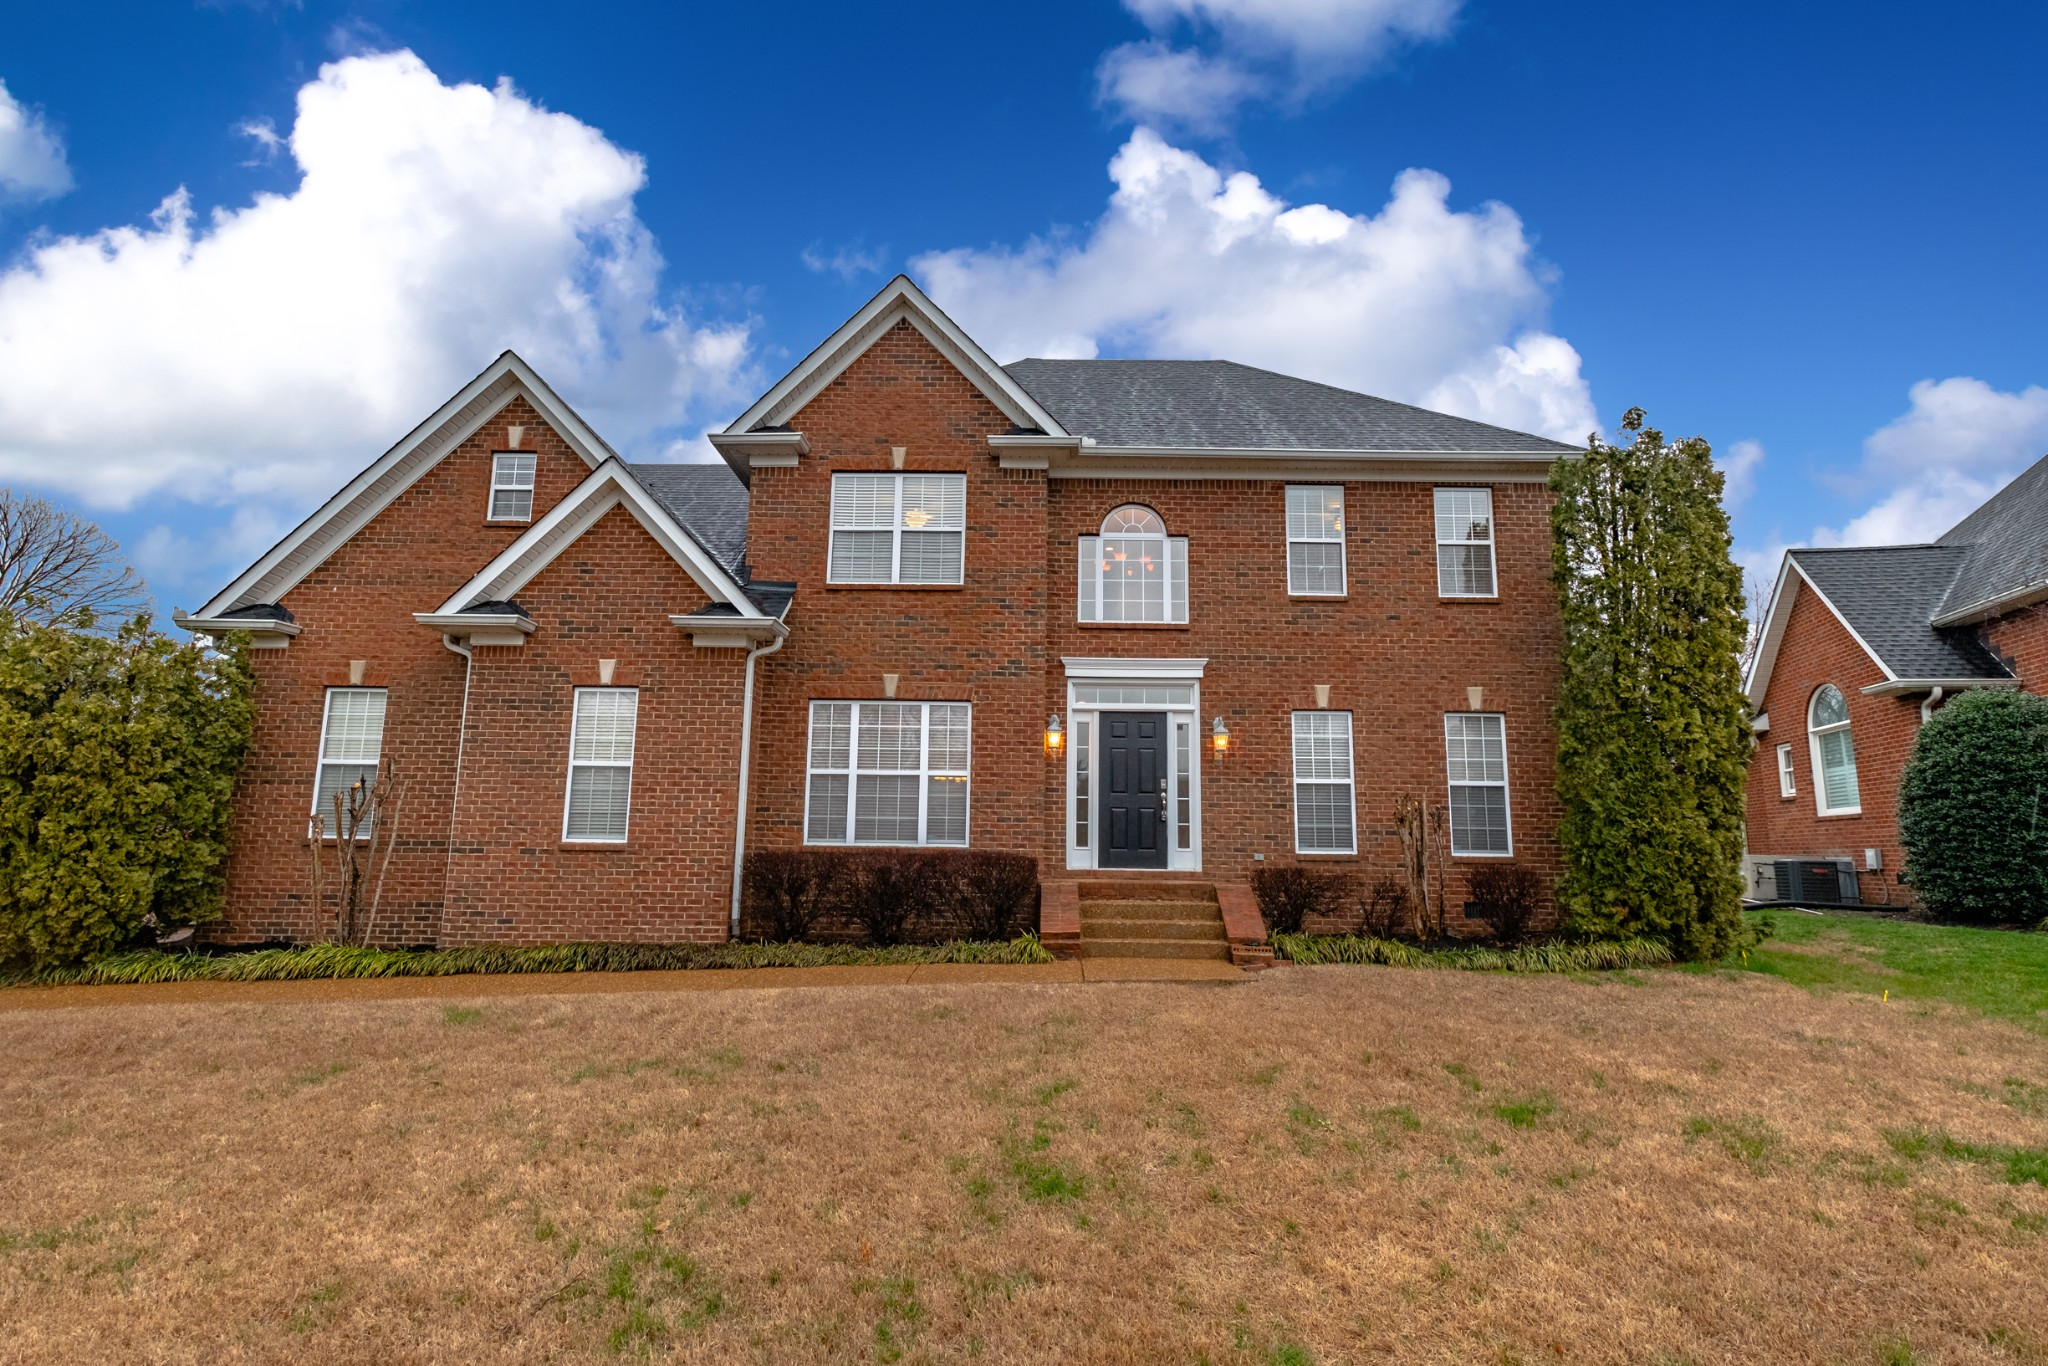 1704 Mildare Ct, Thompsons Station, TN 37179 - Thompsons Station, TN real estate listing